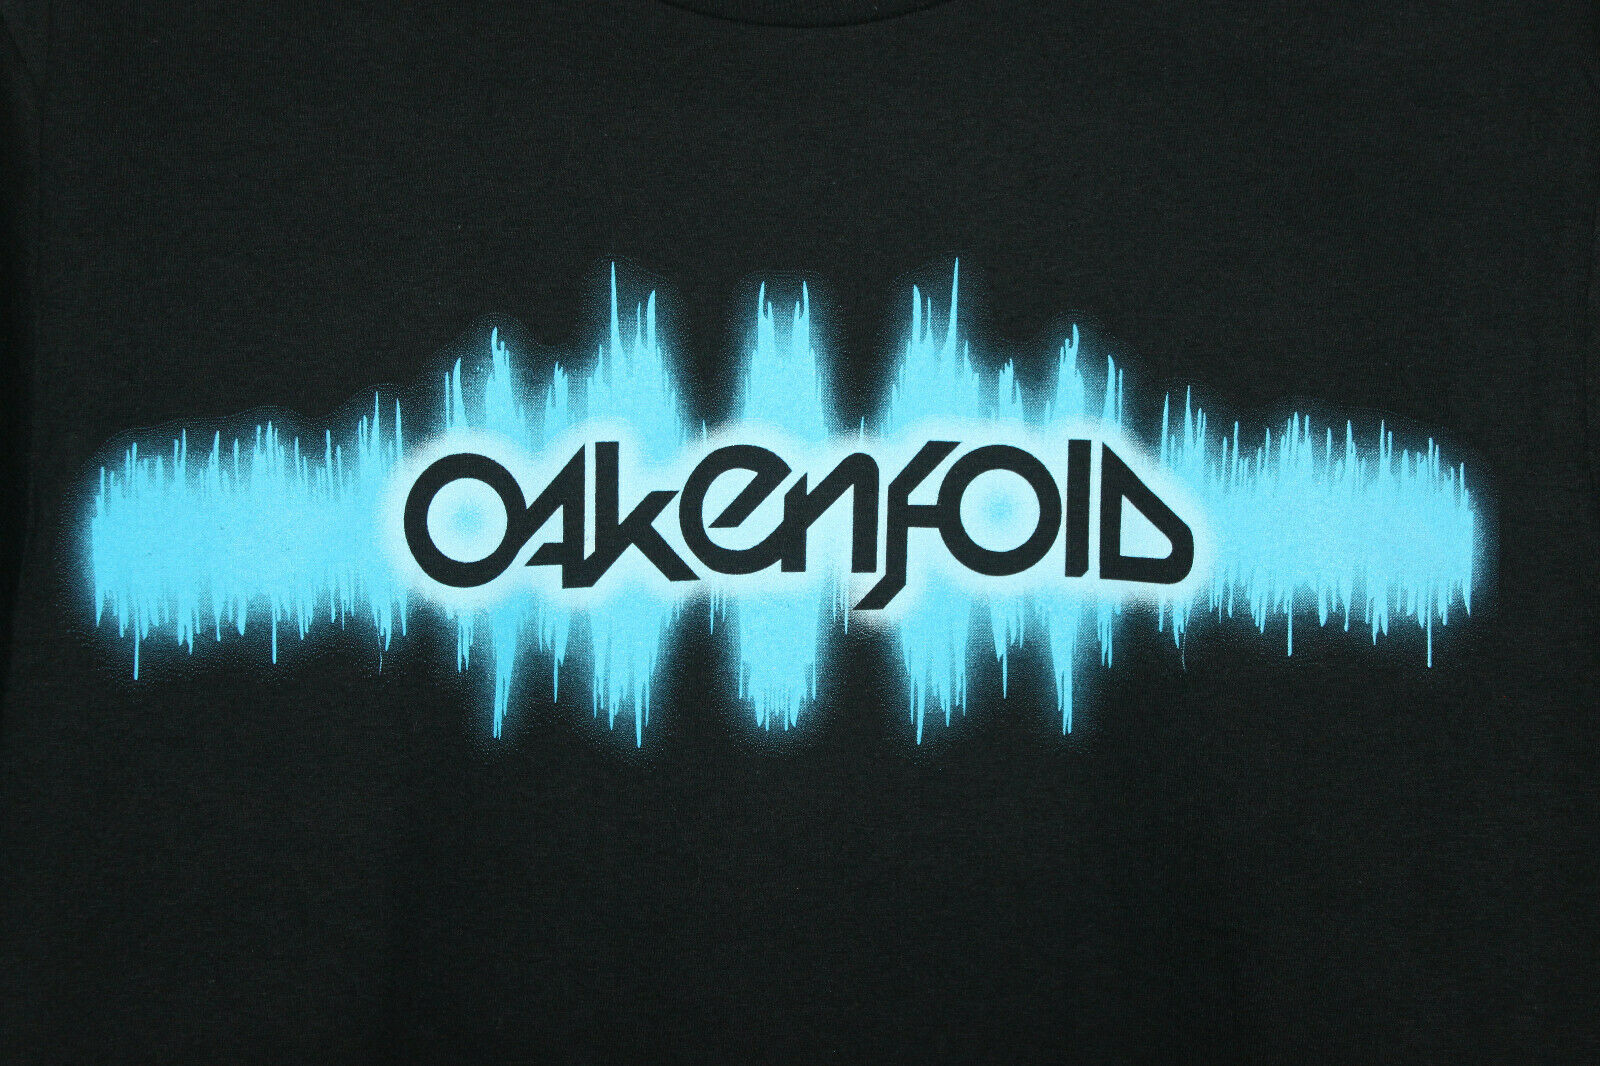 Paul Oakenfold Collectible Concert Tshirt - Size Medium - $14.99